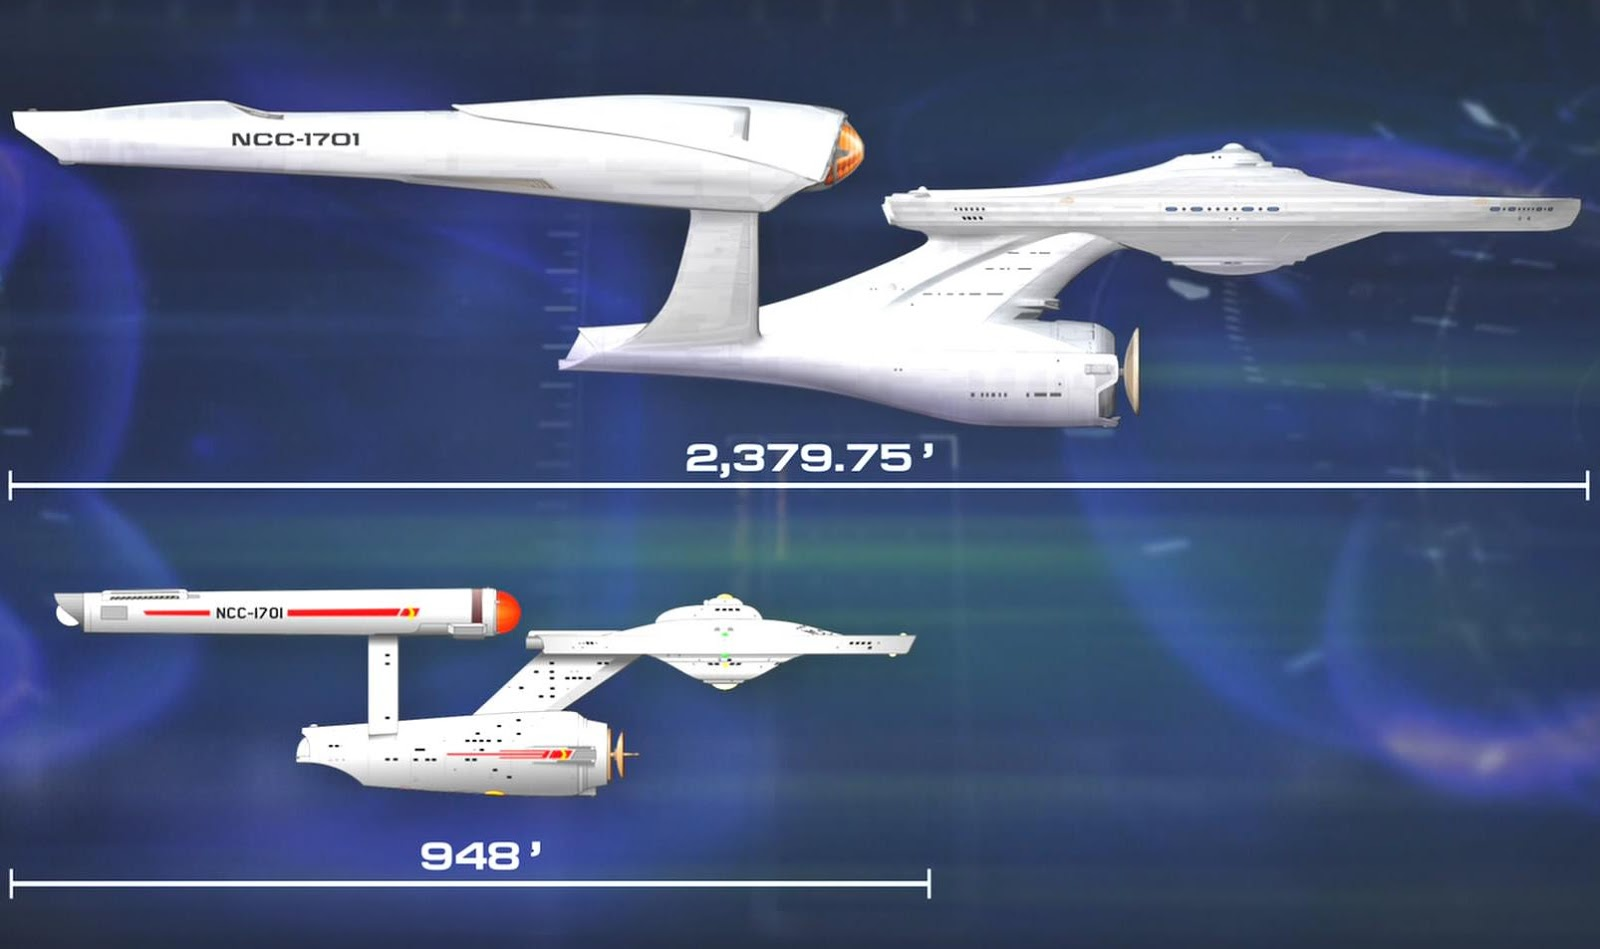 Star+Trek+Consititution+class+comparison.jpg